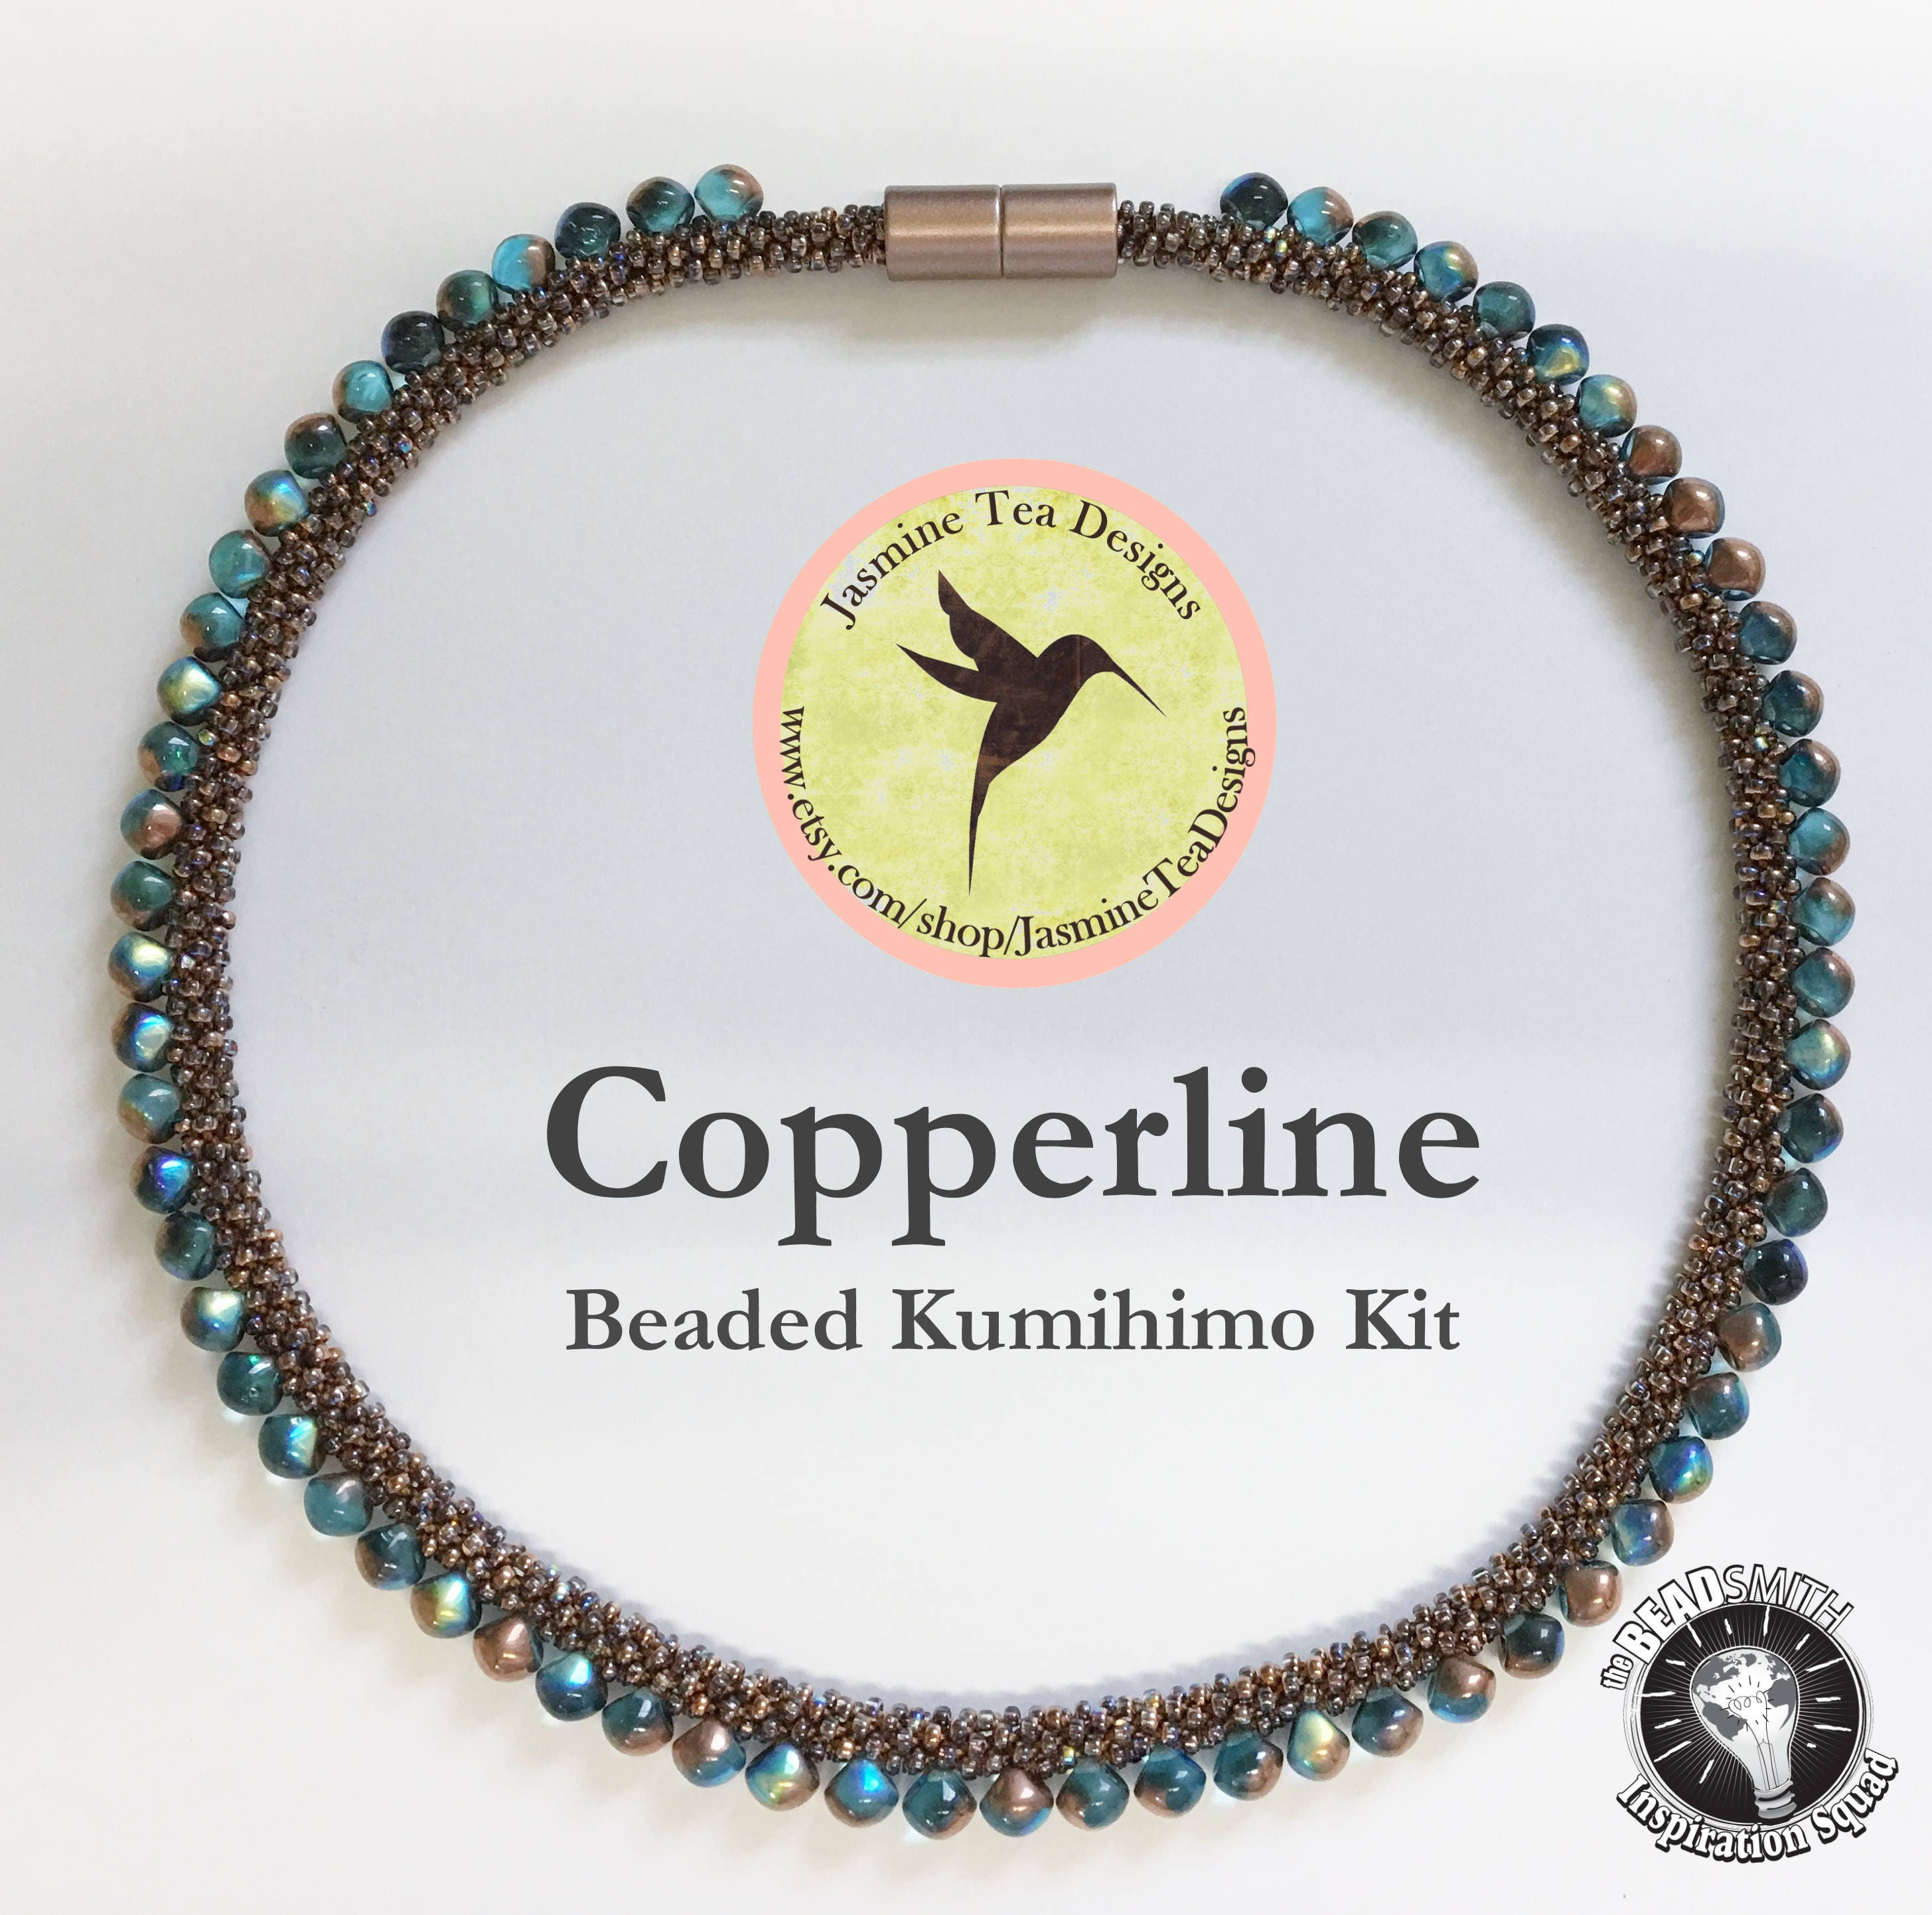 Crystal Copper Rainbow And Aqua Copper Rainbow Beaded Kumihimo Necklace Kit Loading